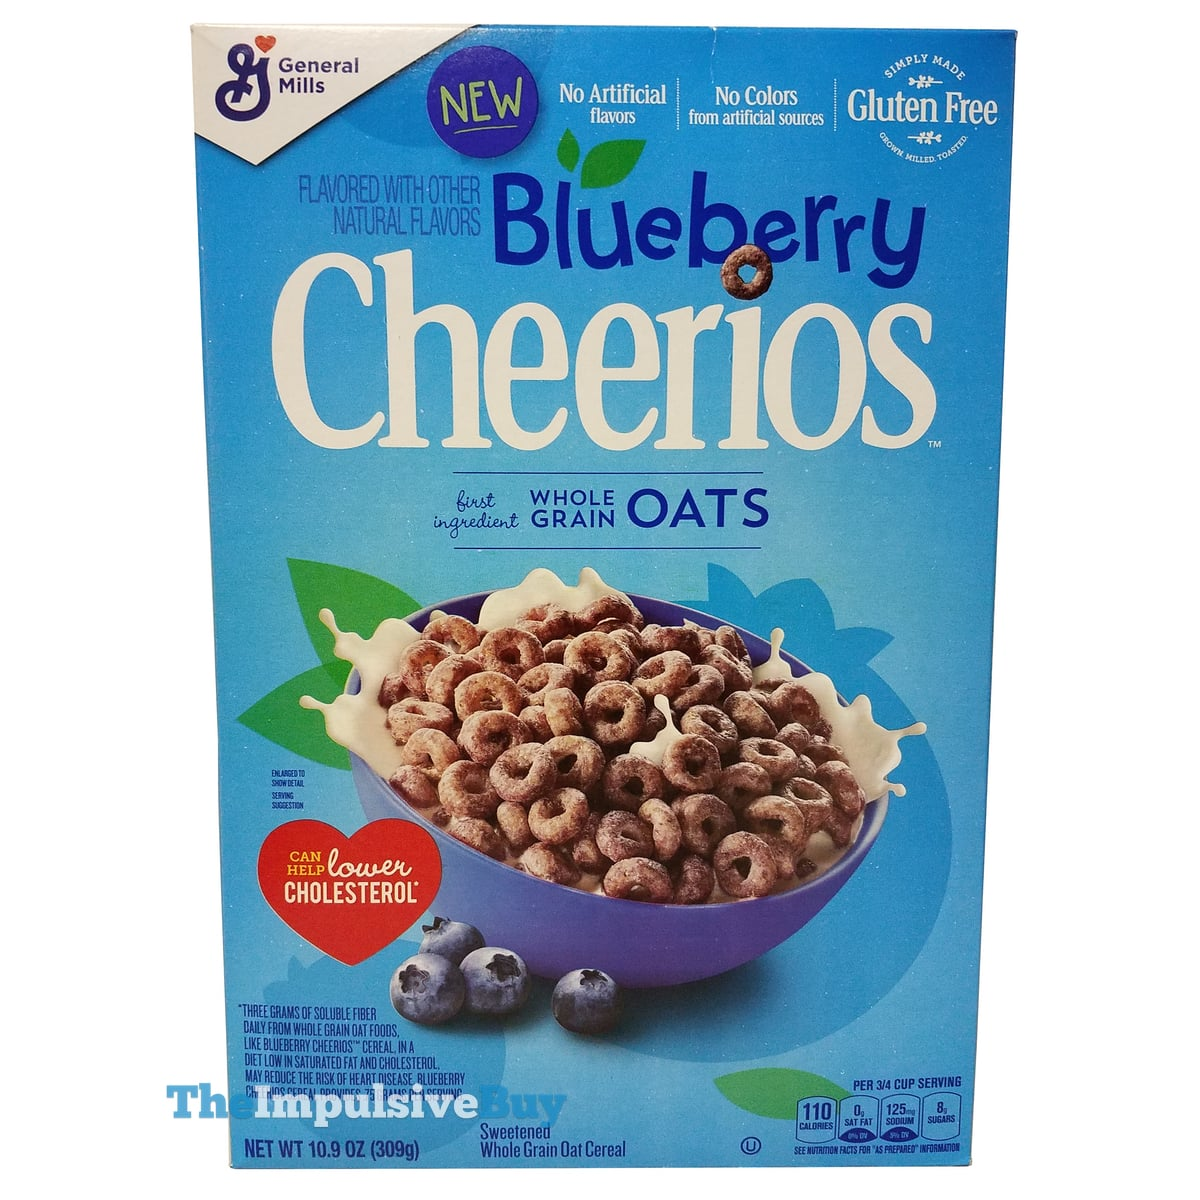 REVIEW: Blueberry Cheerios Cereal - The Impulsive Buy